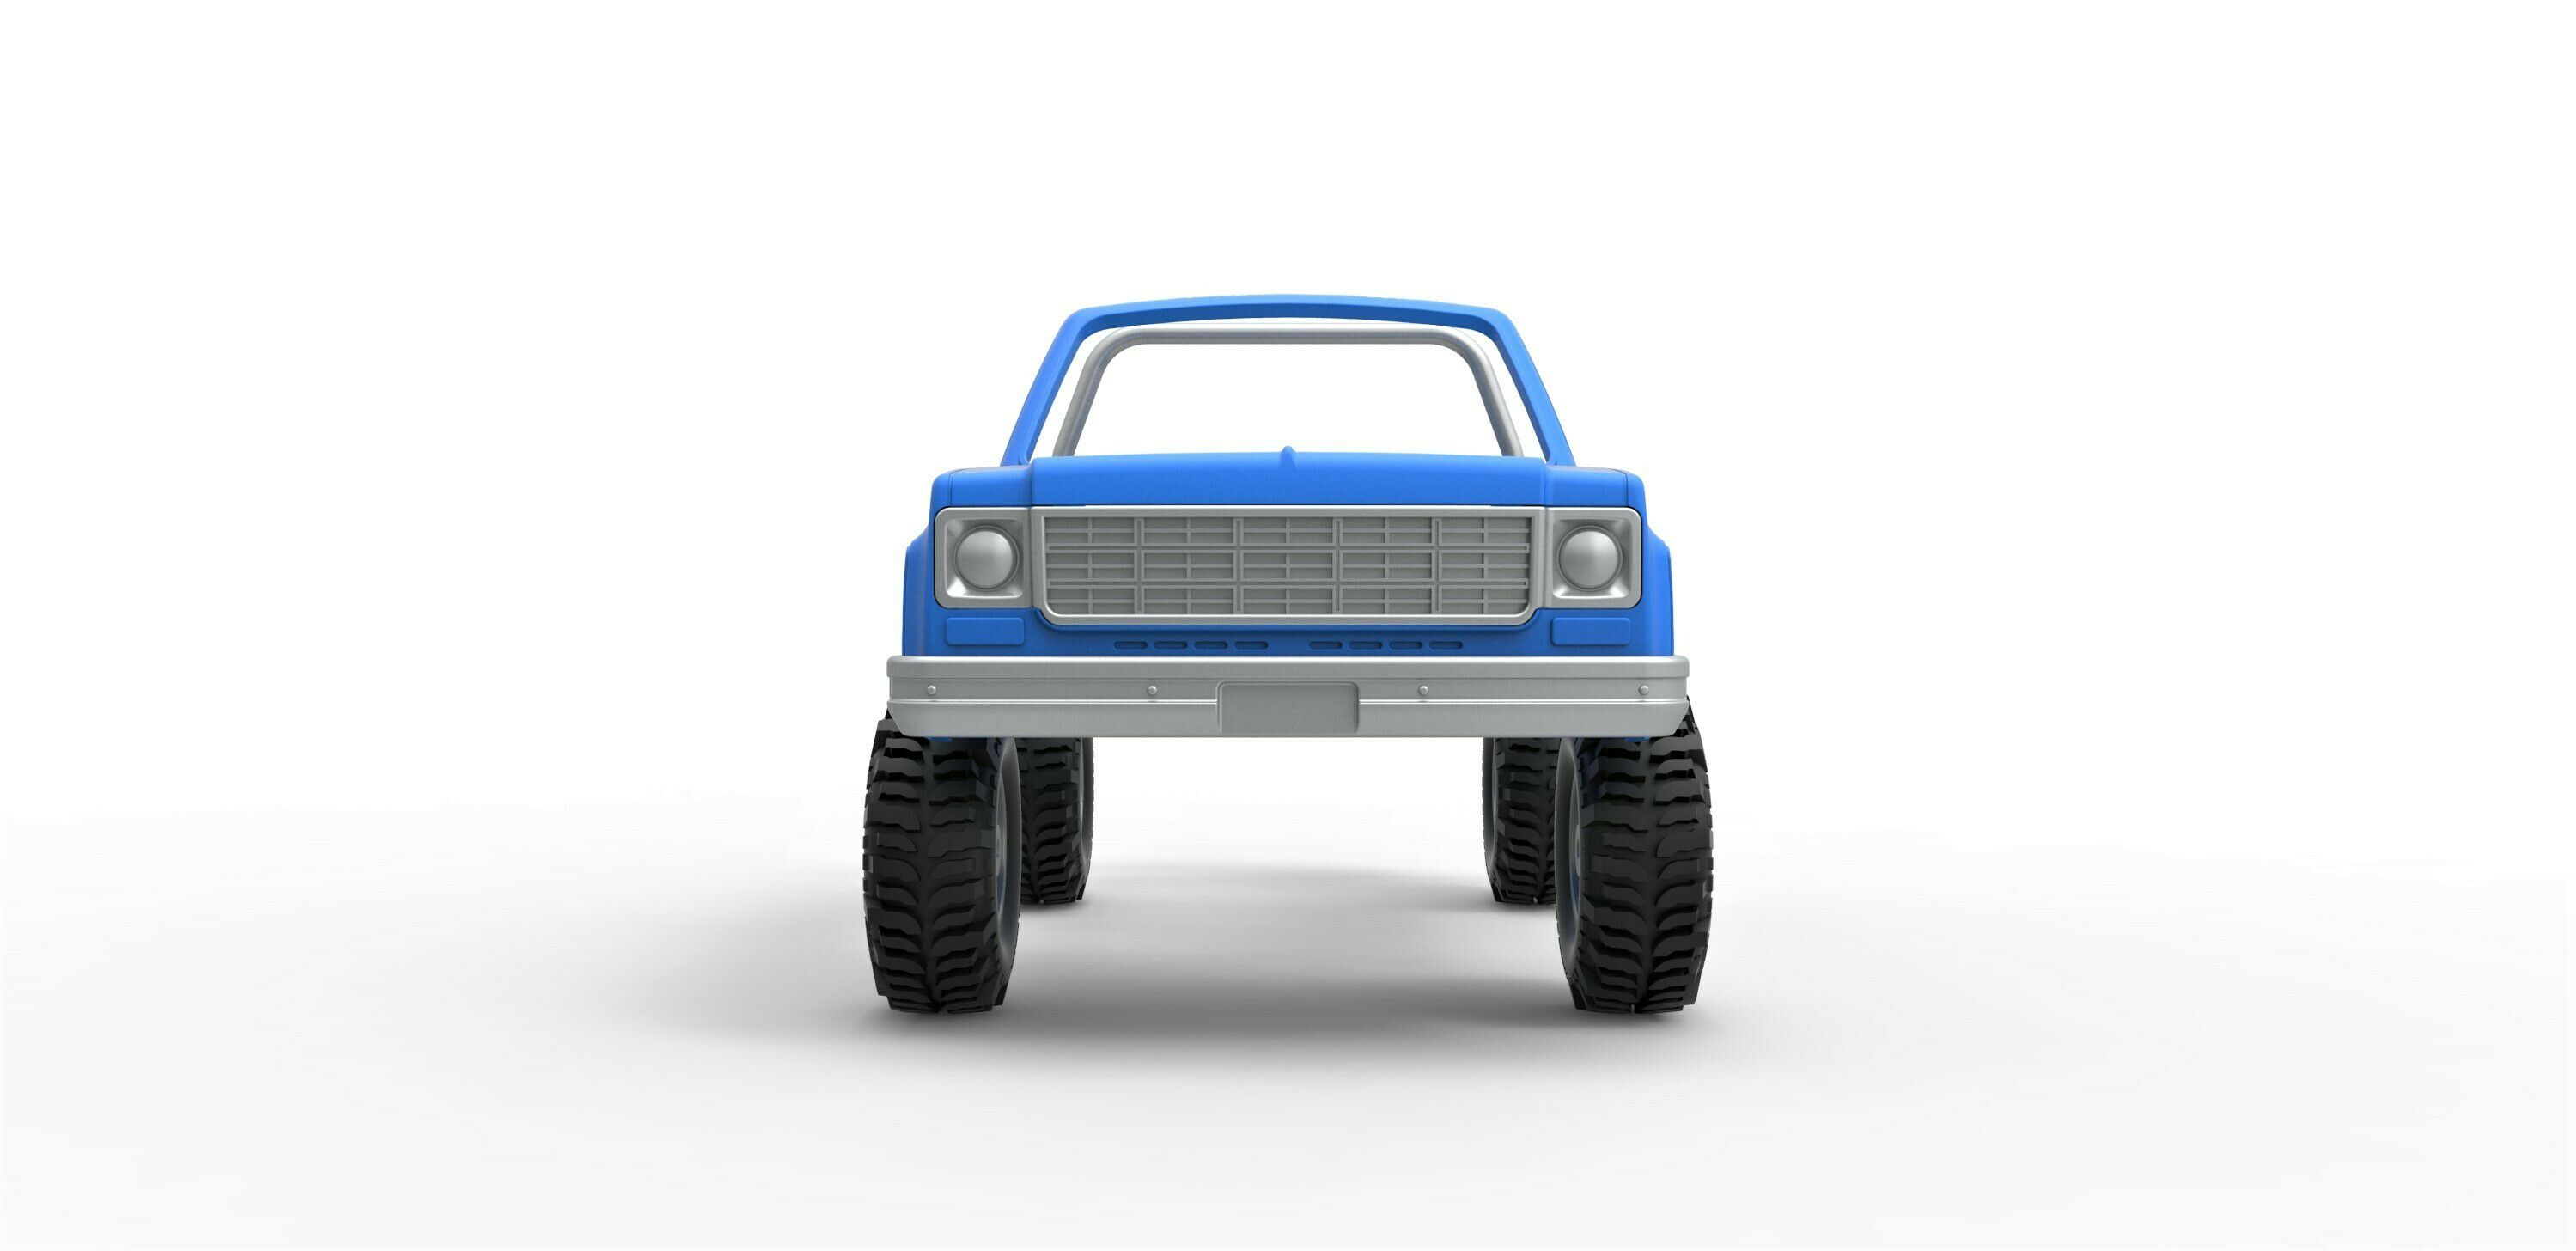 6.jpg Download STL file Diecast shell and wheels Chevrolet Blazer K5 1978 cabriolet Scale 1:25 • 3D printing template, CosplayItemsRock